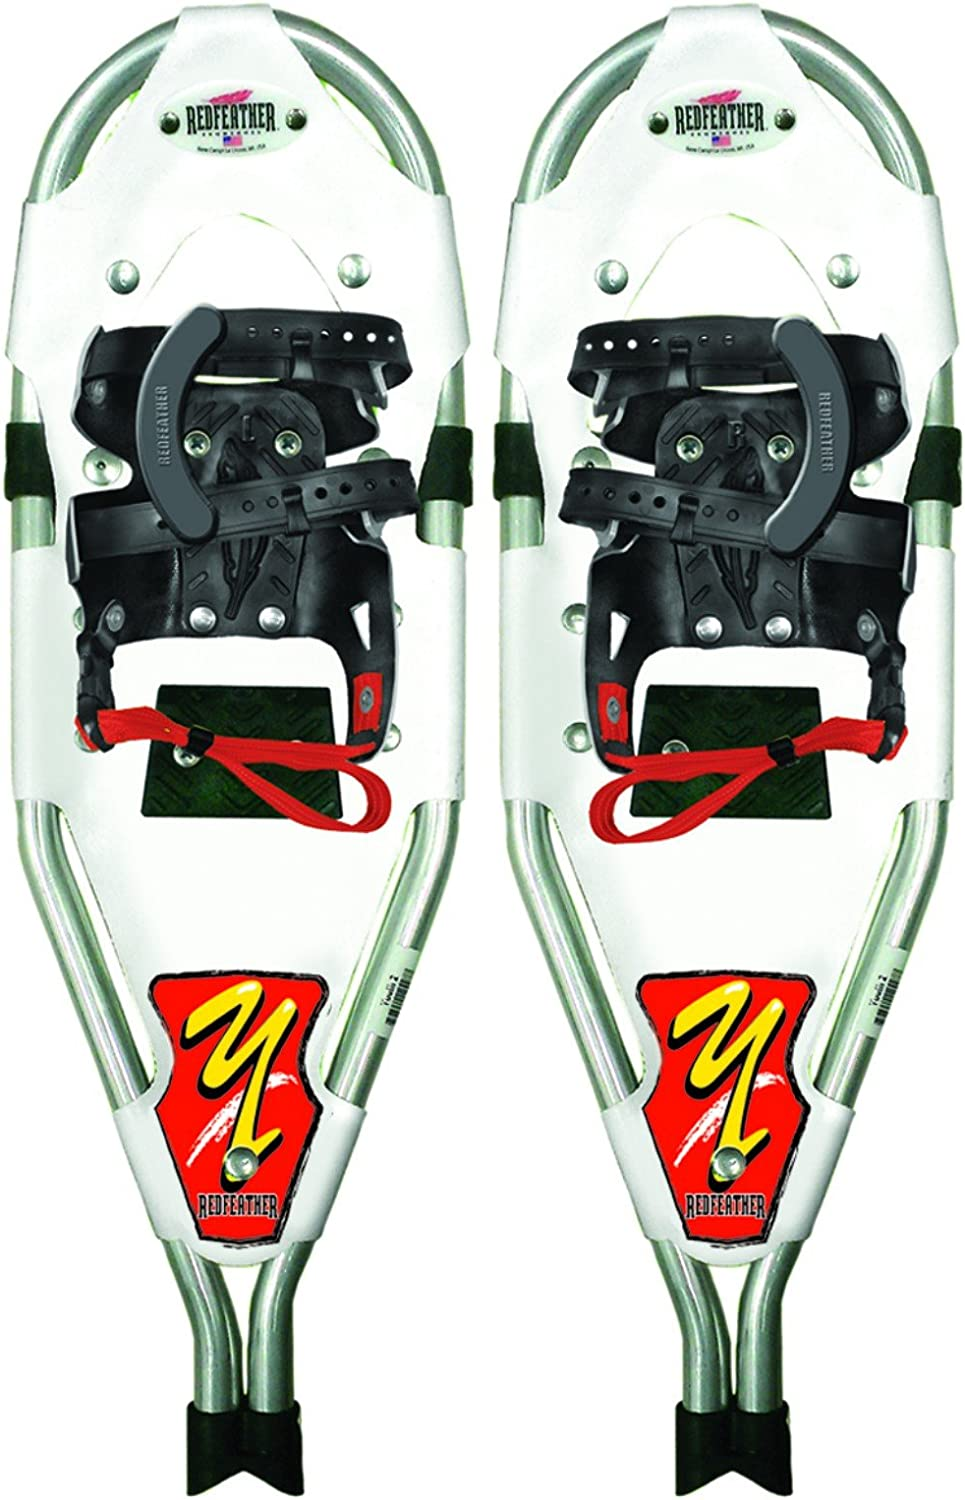 Redfeather 162462 Youth Series Y2 Snowshoes - Pair